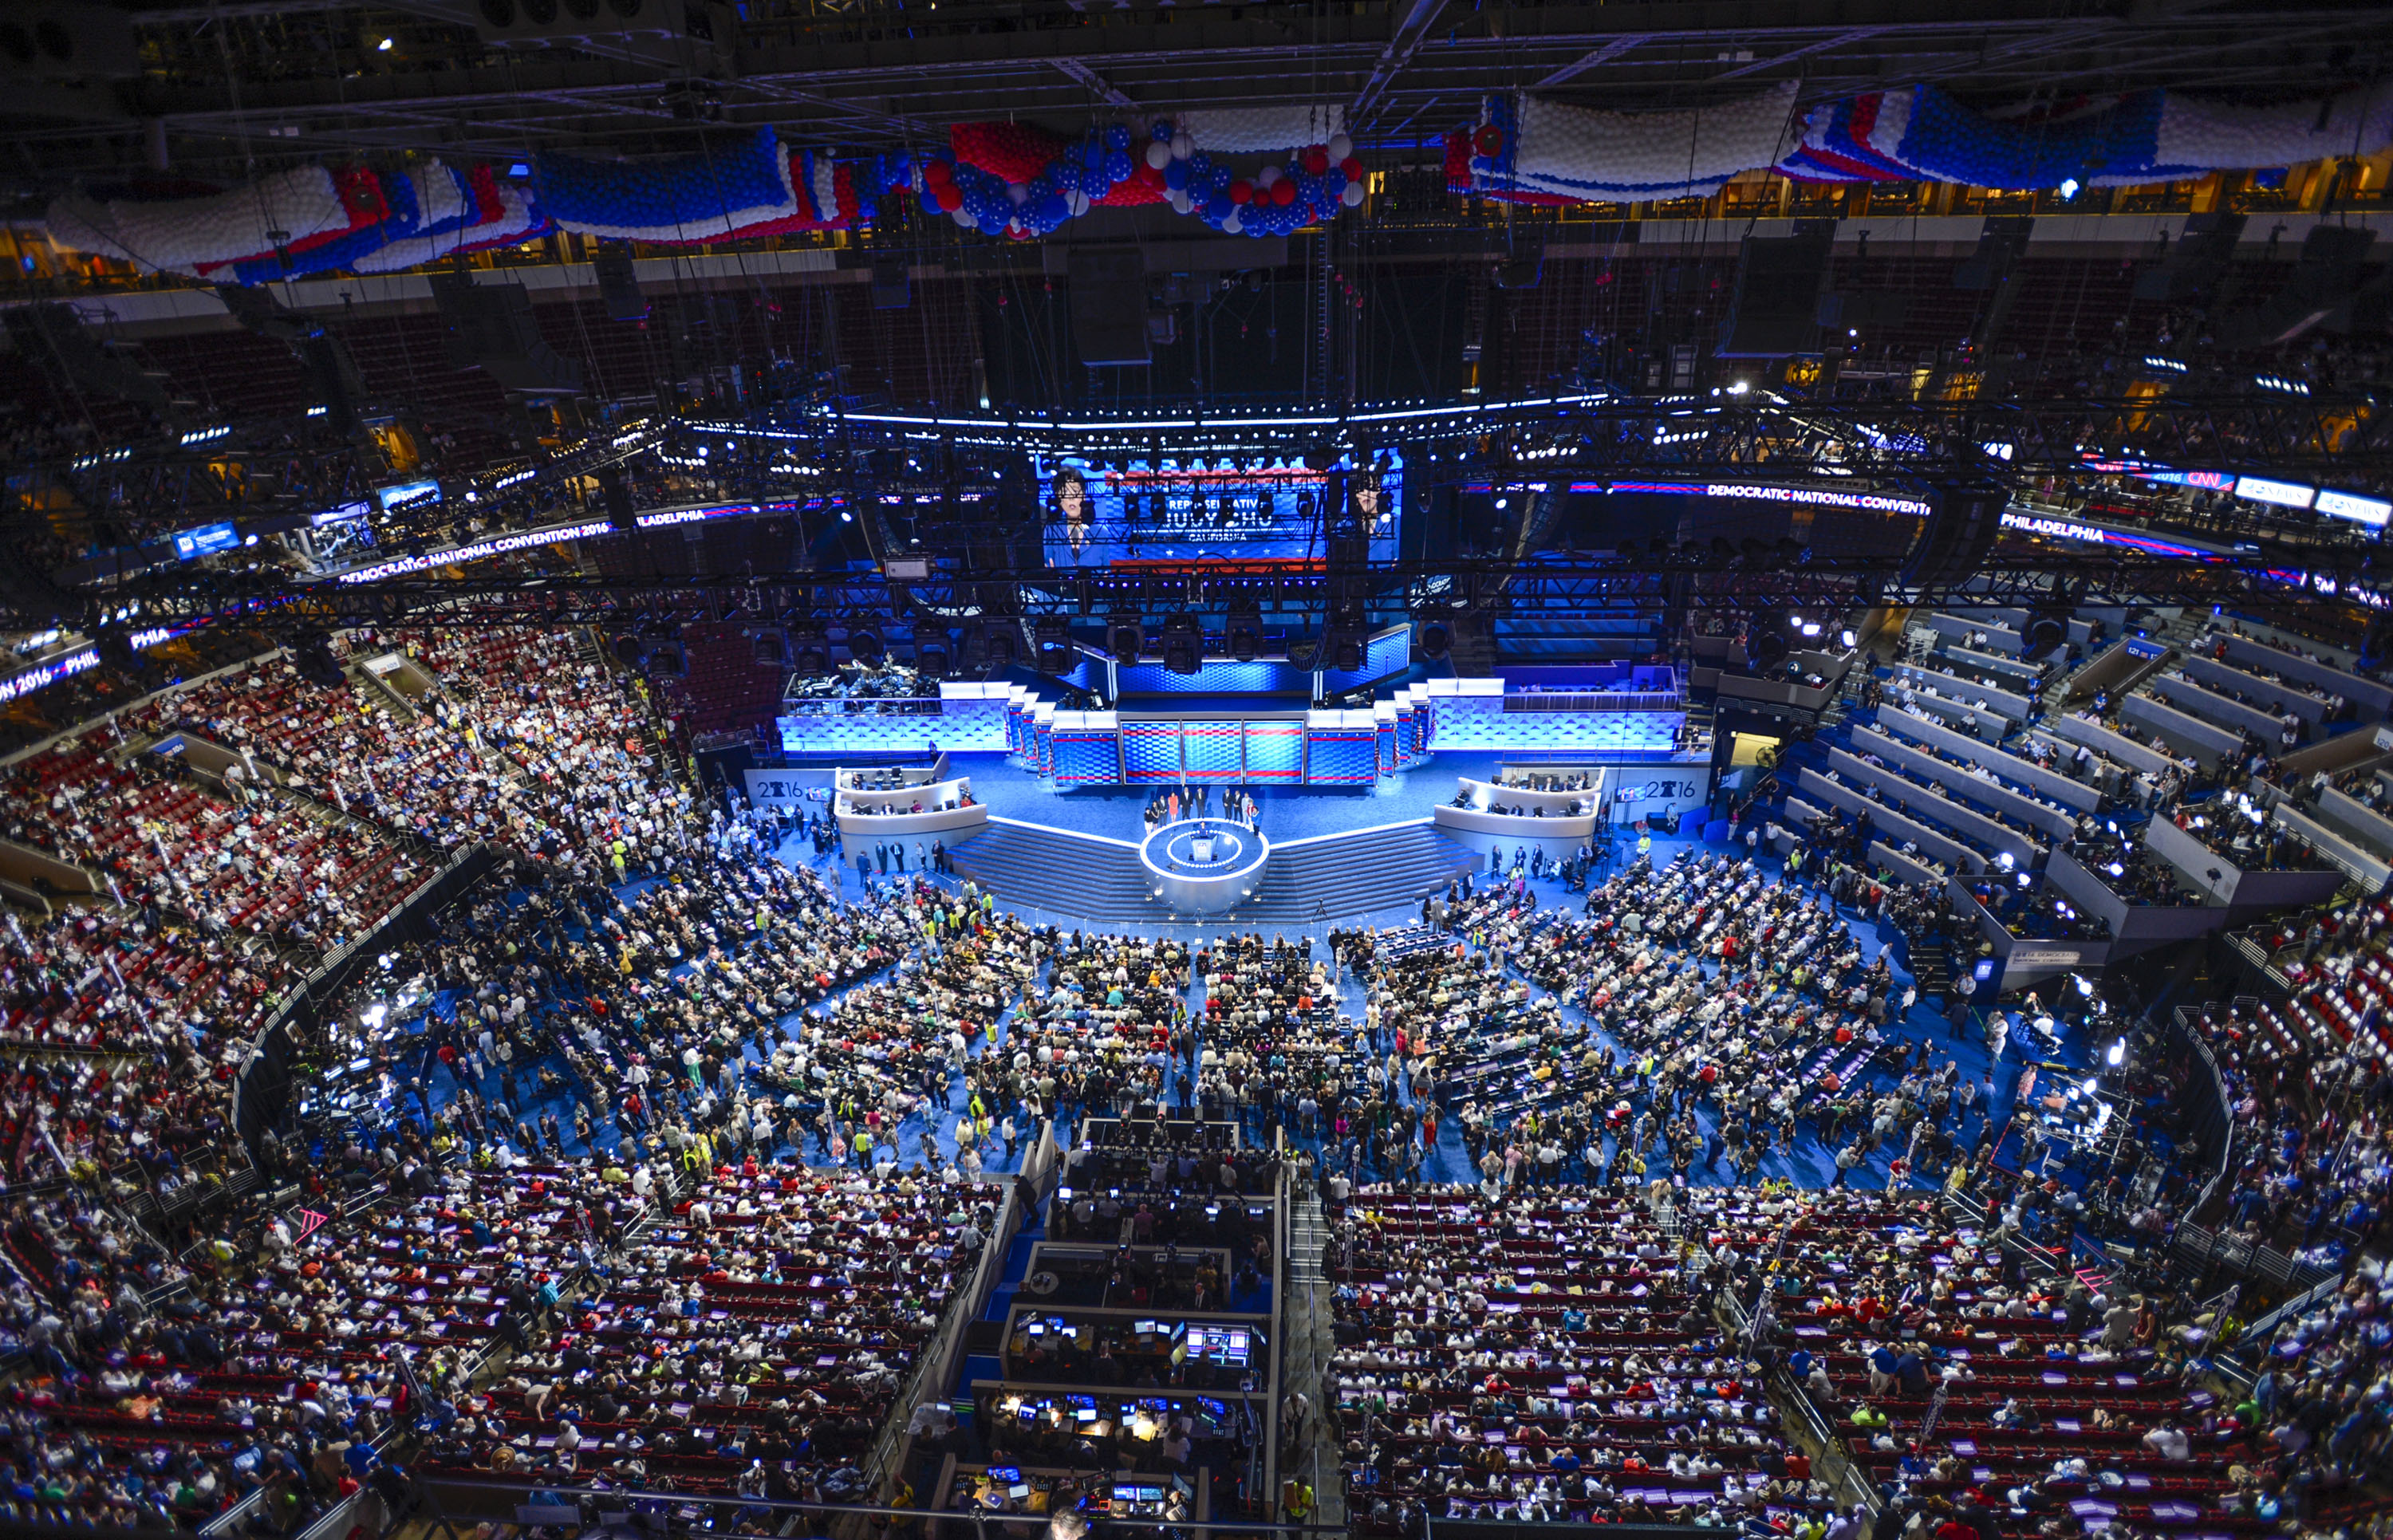 DNC Tickets Being Sold on Craigslist for as Much as $500 | Fortune